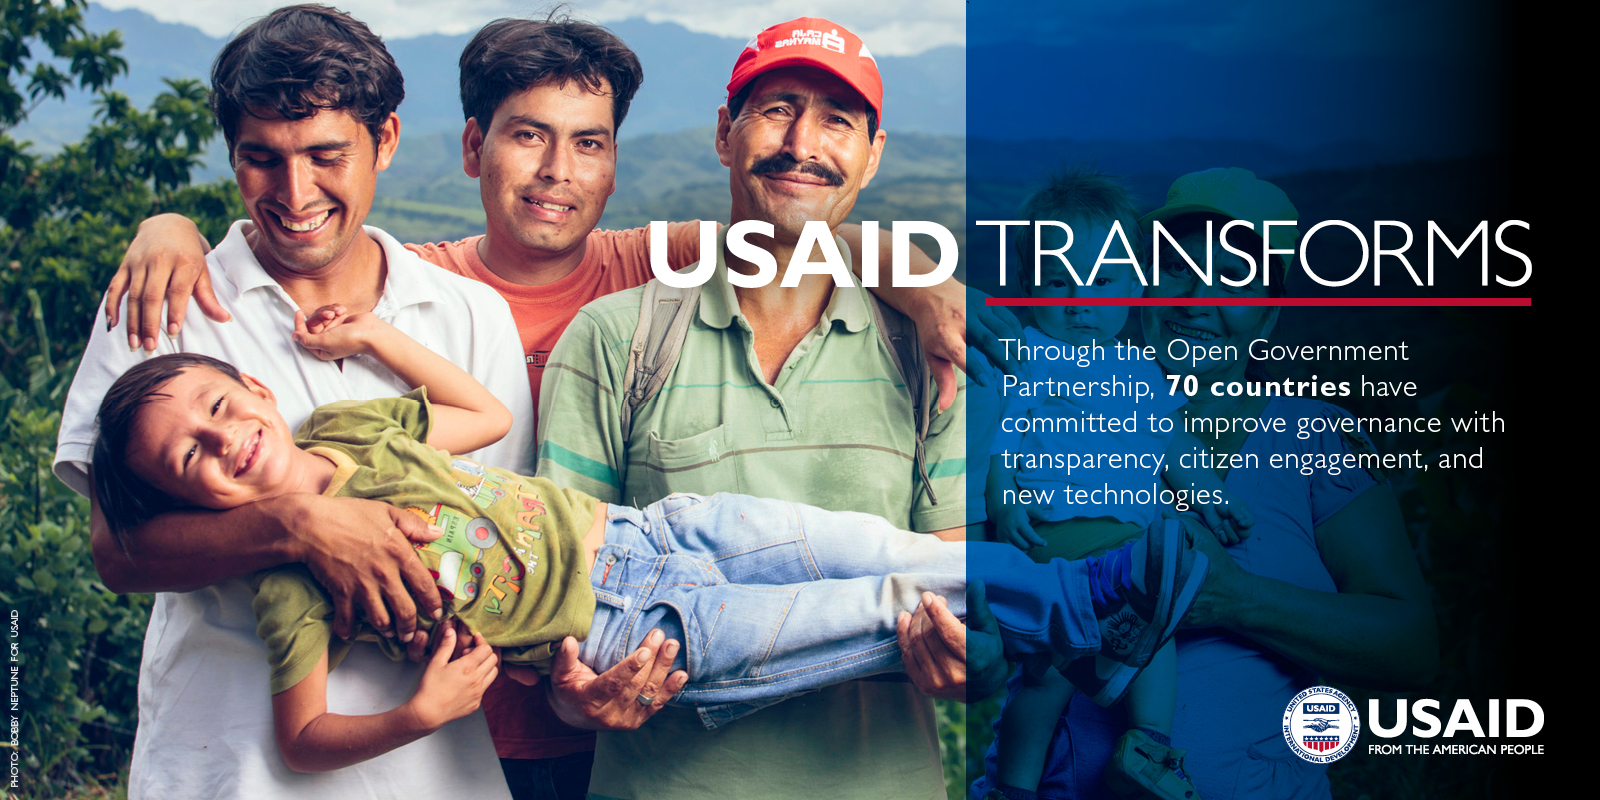 USAID Transforms: Through the Open Government Partnership, 70 countries have committed to improve governance with transparency, citizen engagement, and new technologies. Photo: Bobby Neptune for USAID.